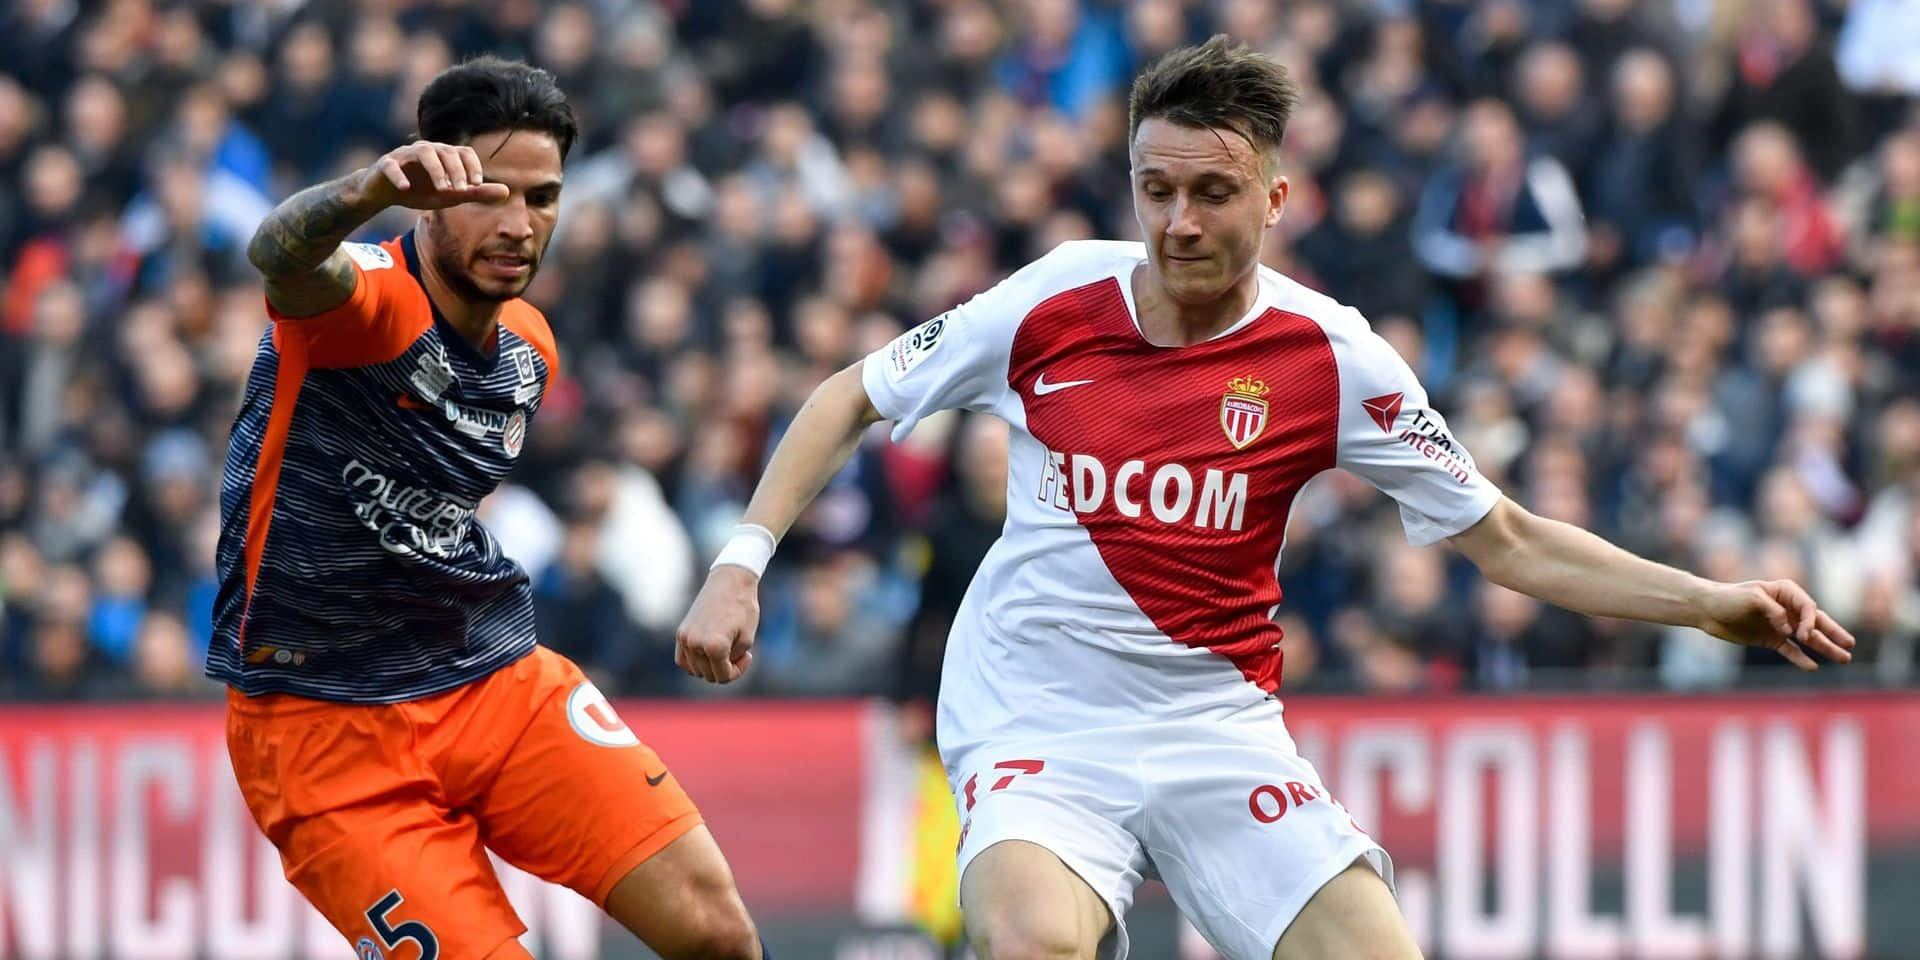 (FILES) In this file photo taken on February 10, 2019 Montpellier's Portuguese defender Pedro Mendes (L) fights for the ball with Monaco's Russian midfielder Aleksandr Golovin (R) during the French L1 football match between Montpellier Herault SC and AS Monaco at the Mosson stadium in Montpellier, southern France. (Photo by GERARD JULIEN / AFP)